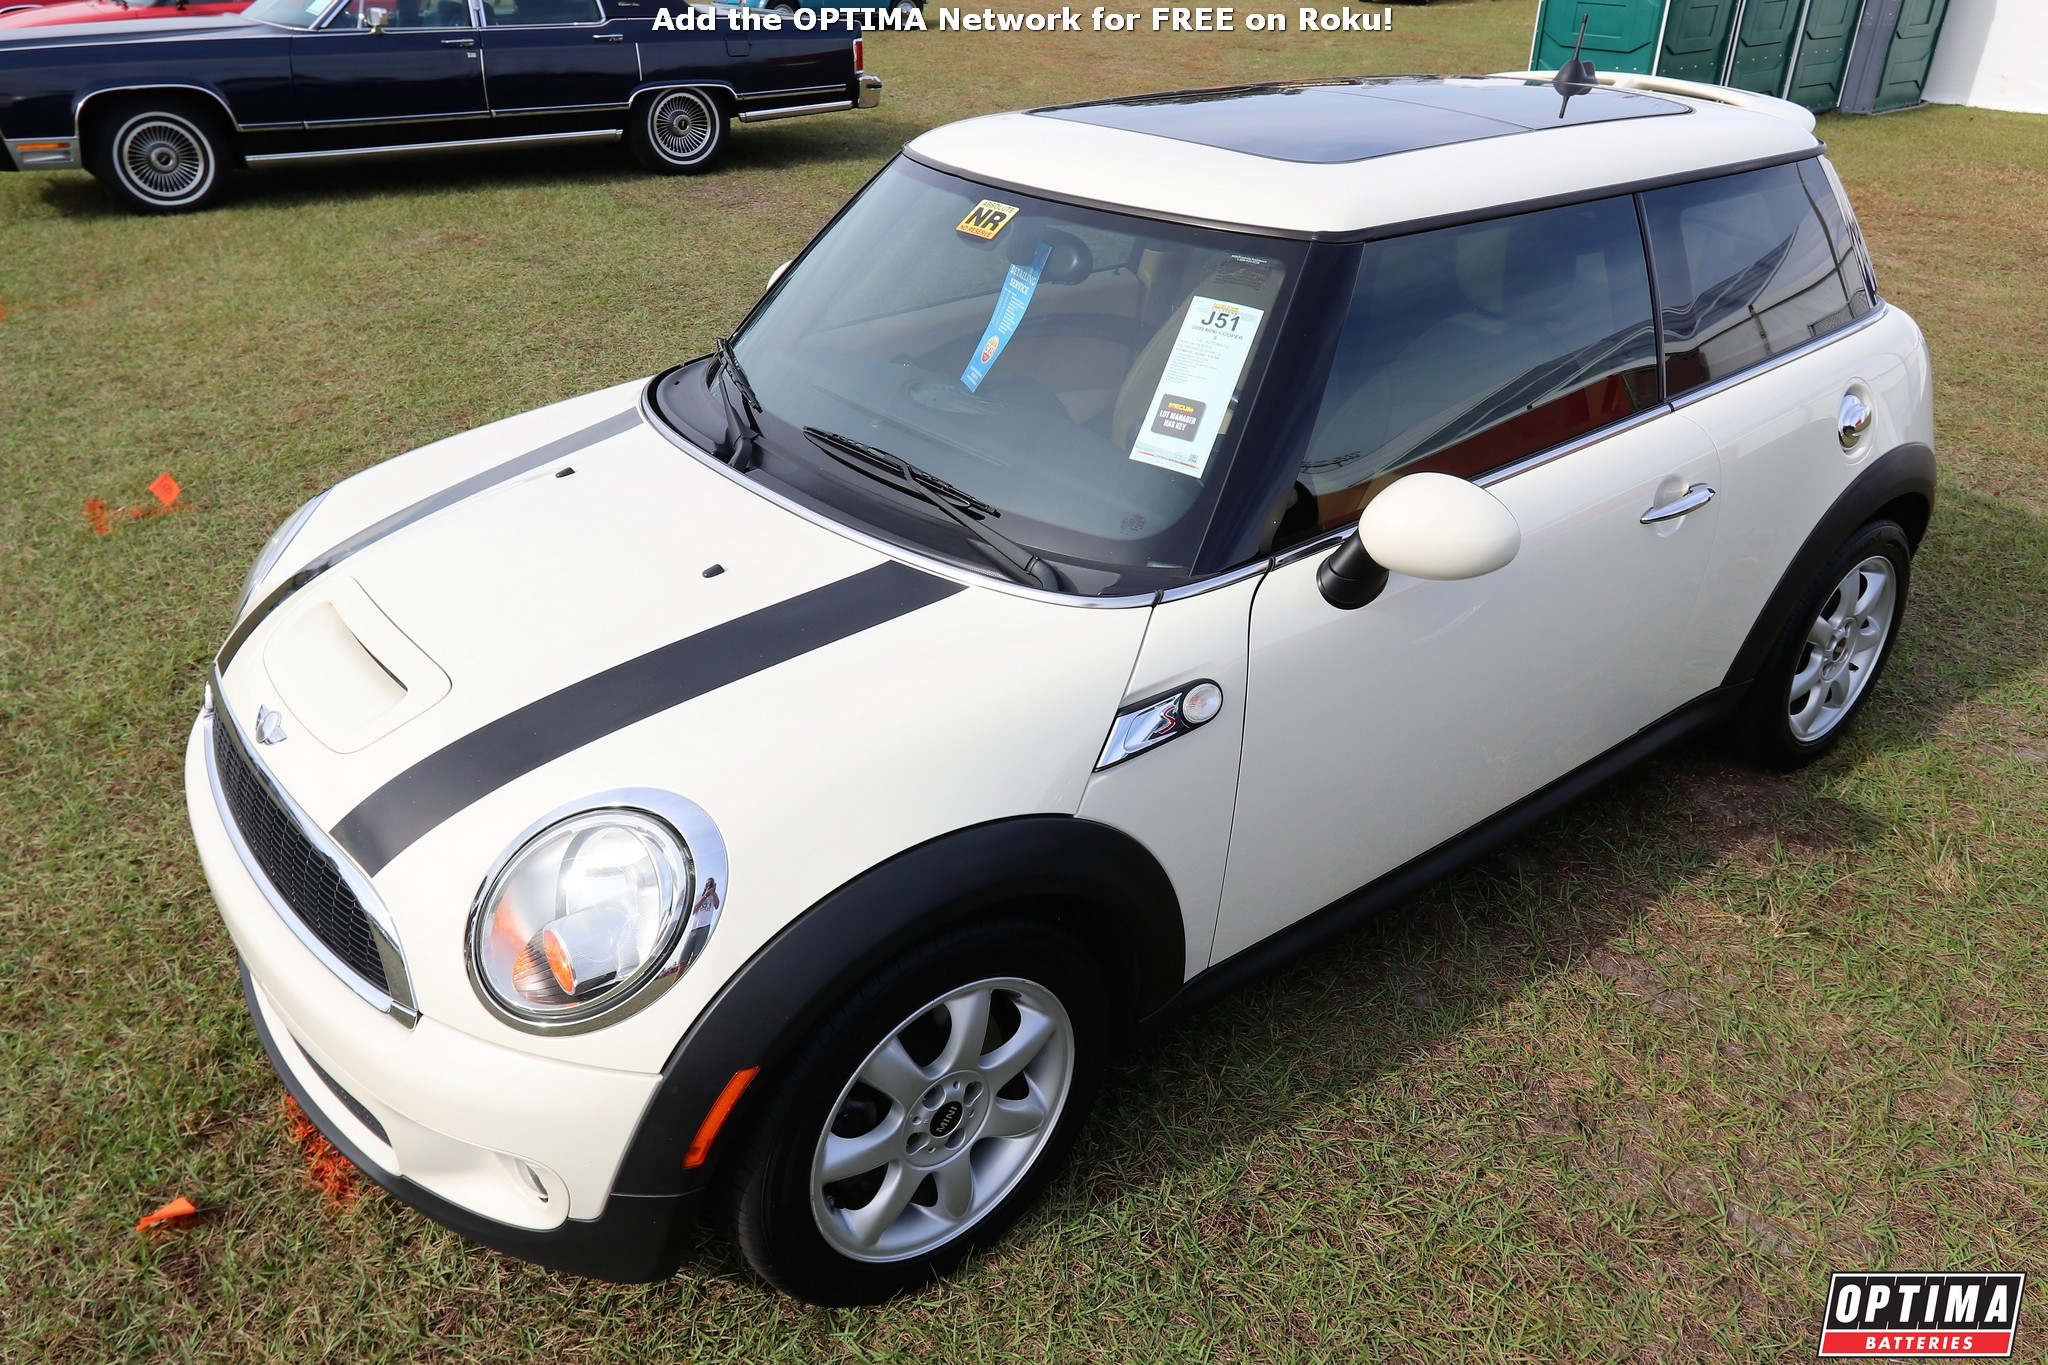 What battery does a Mini Cooper take?